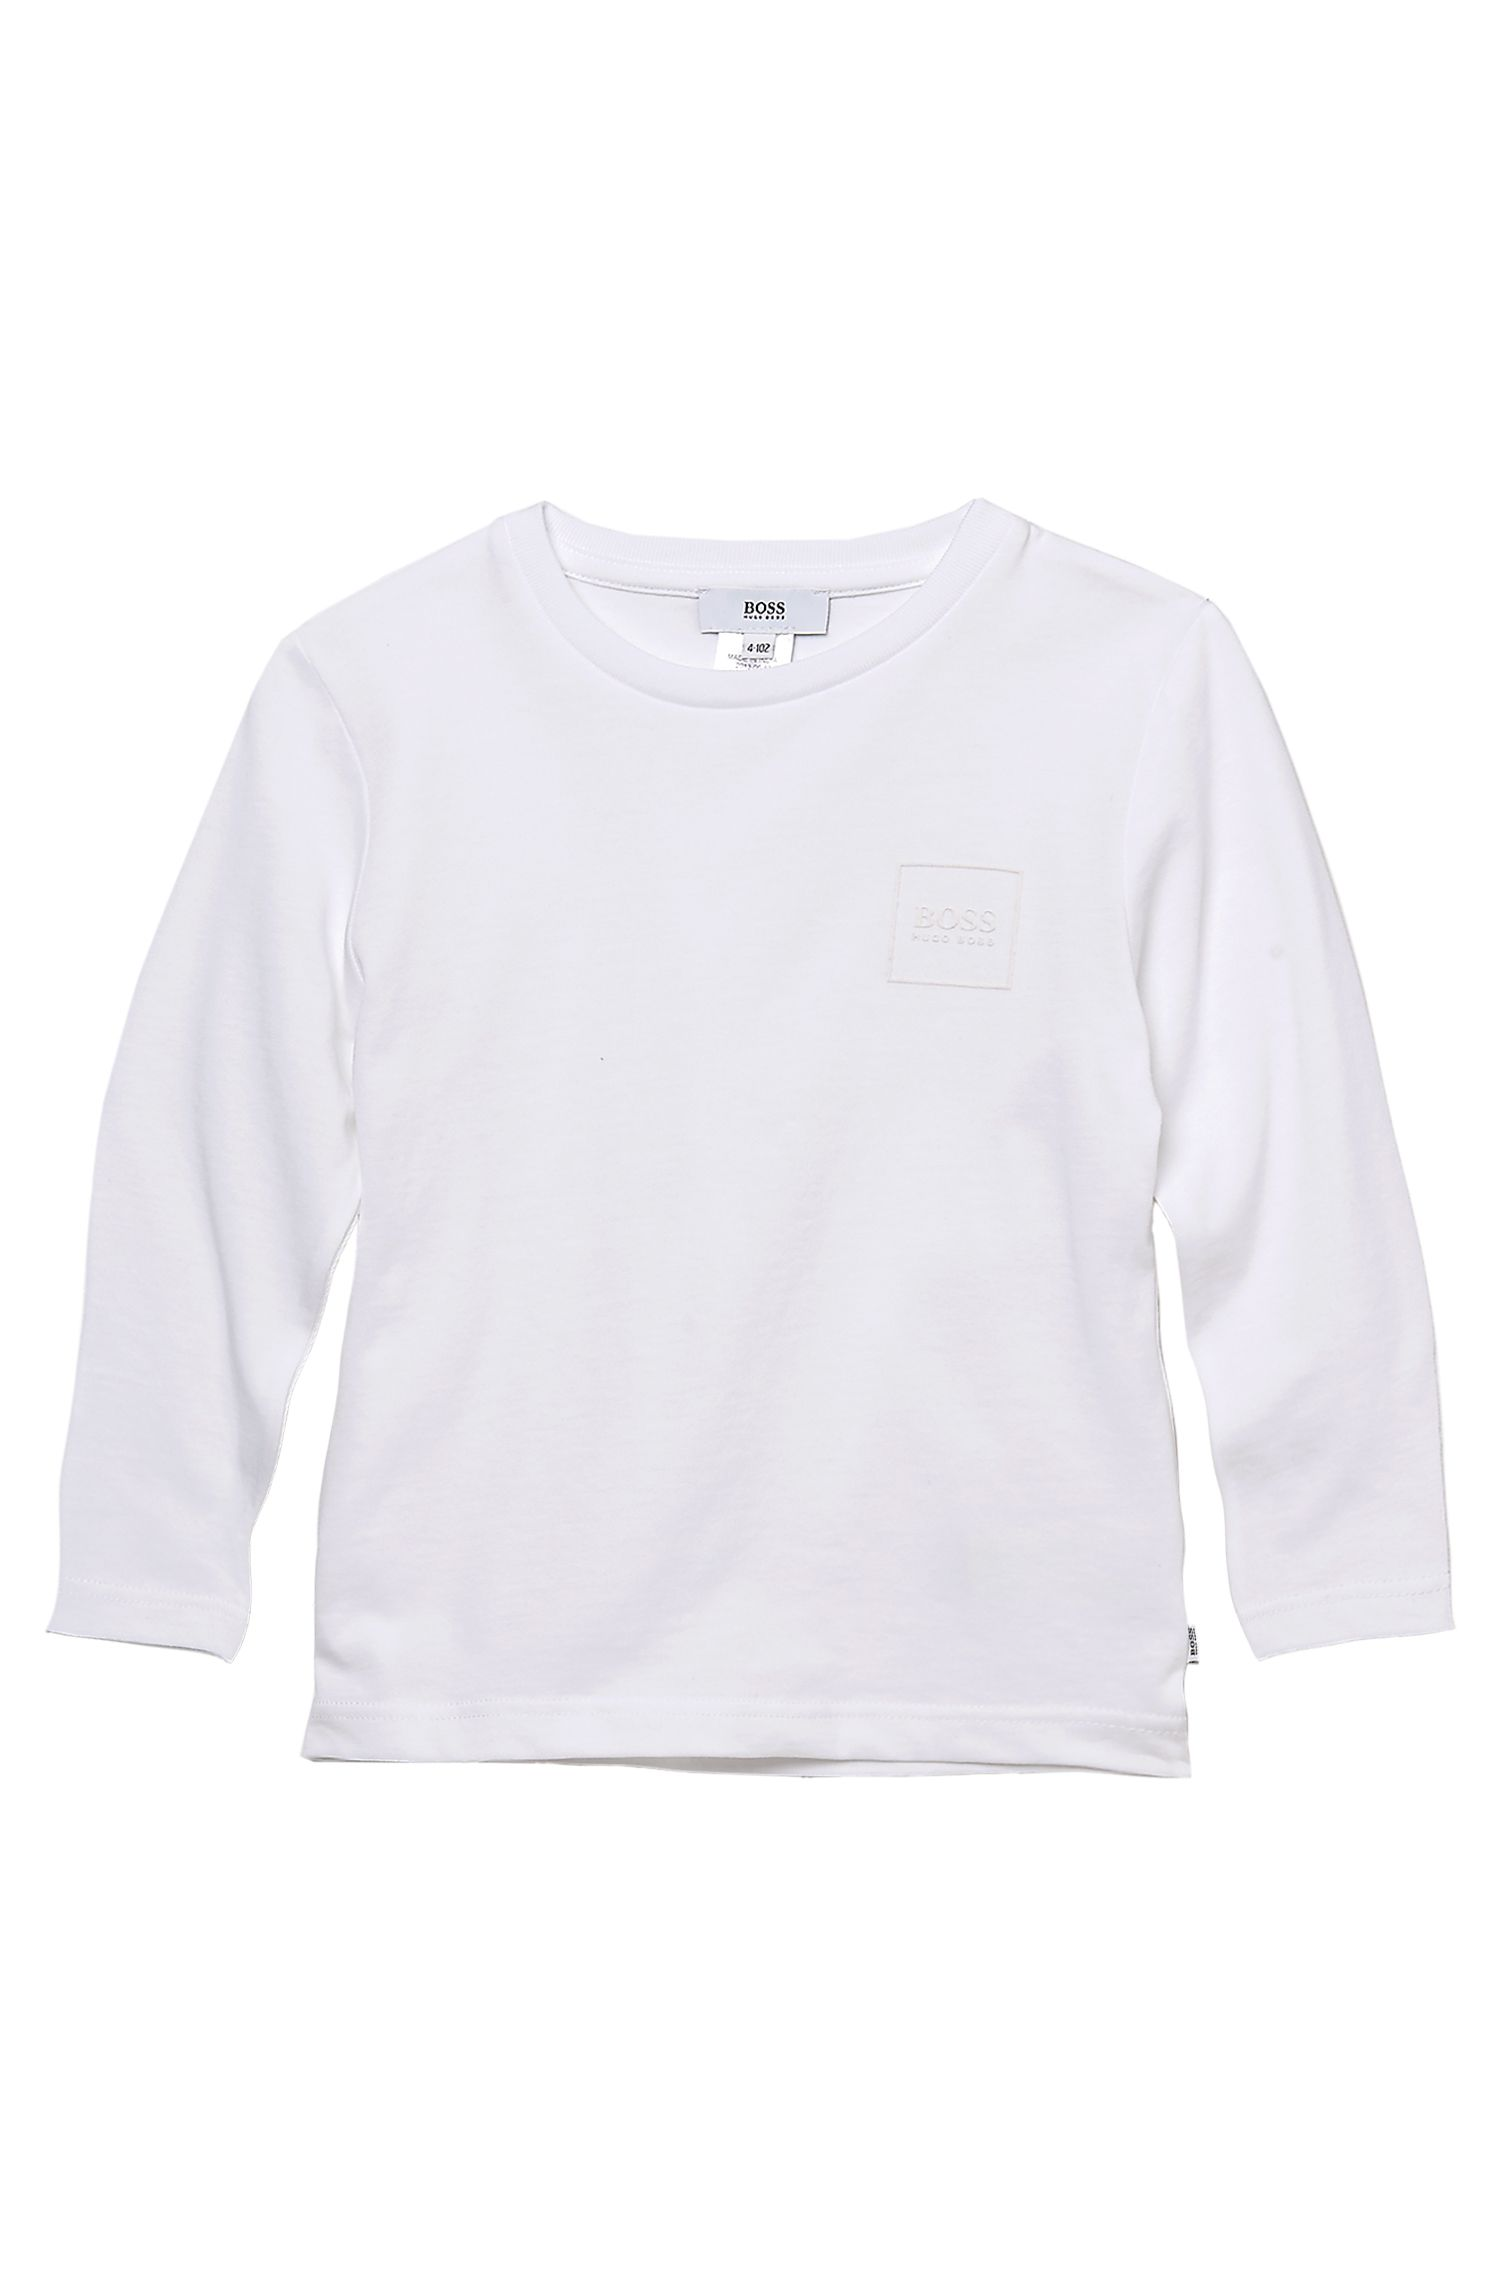 'J25541' | Boys Long-Sleeved Cotton Crewneck Logo T-Shirt